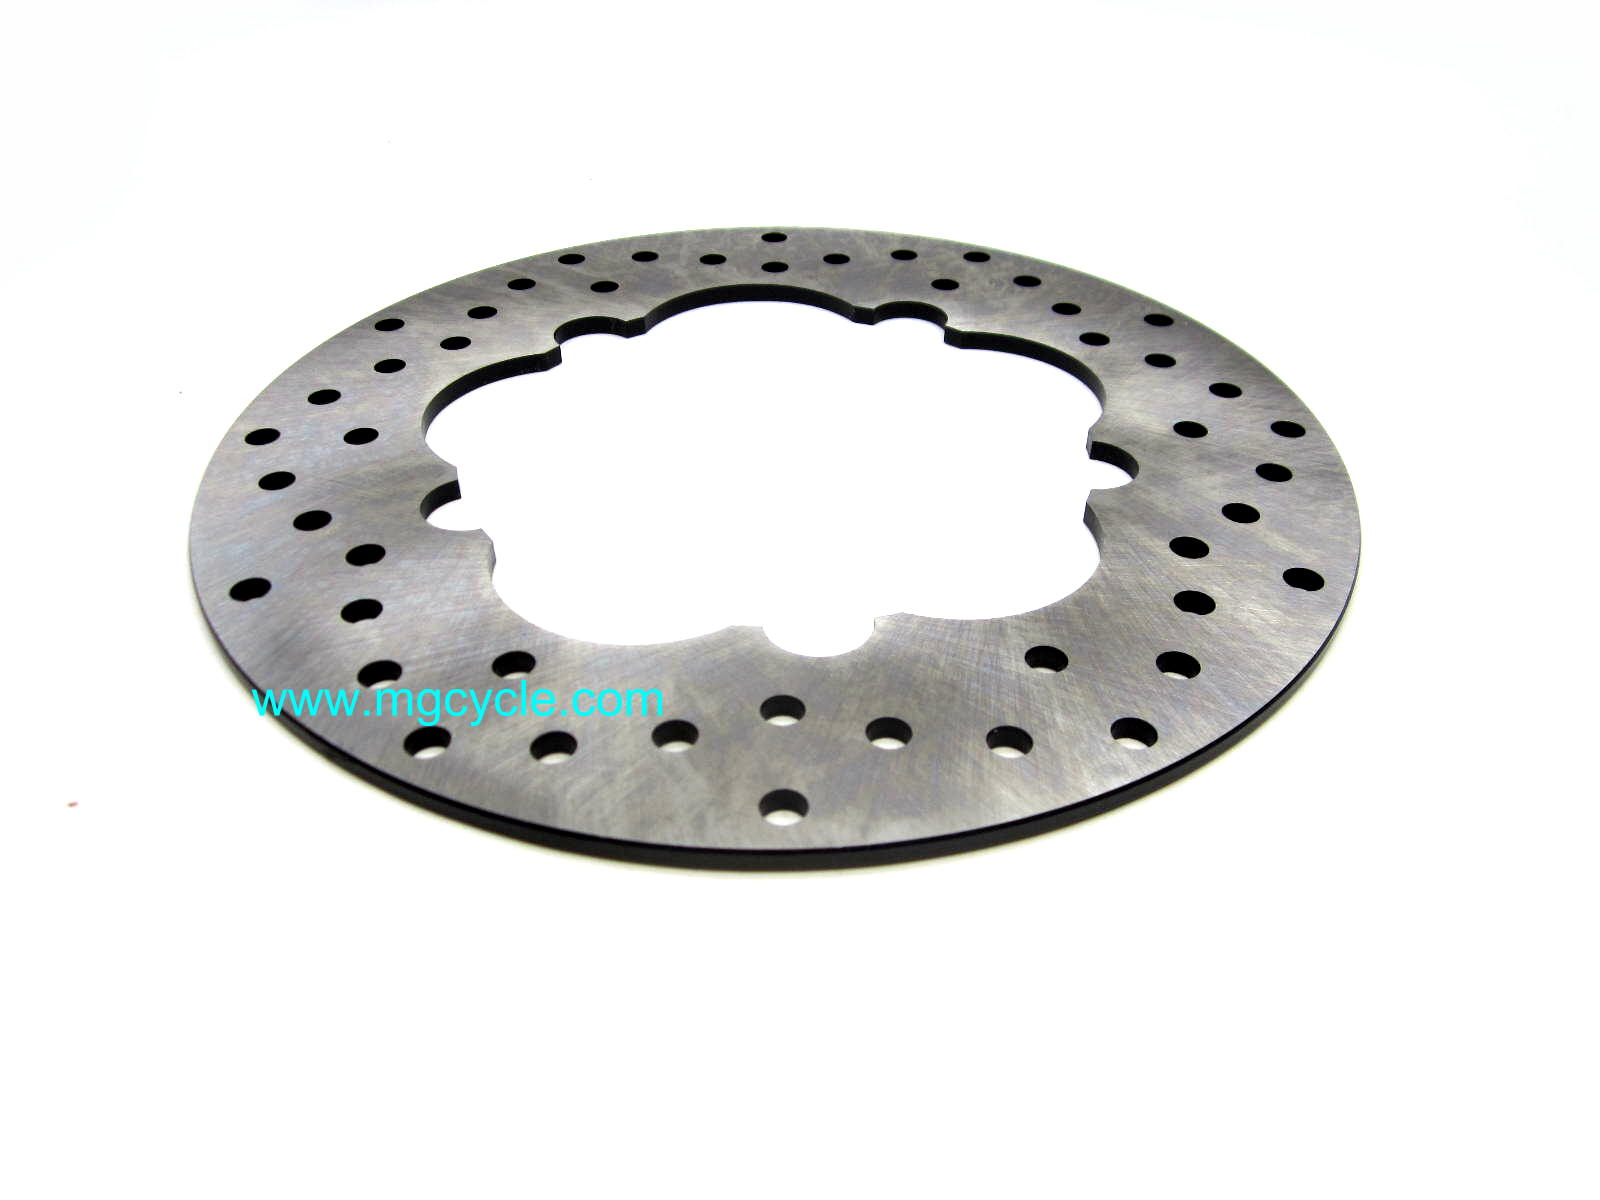 brake disk, LM1000-SP3-Cal3-1000S, outer ring